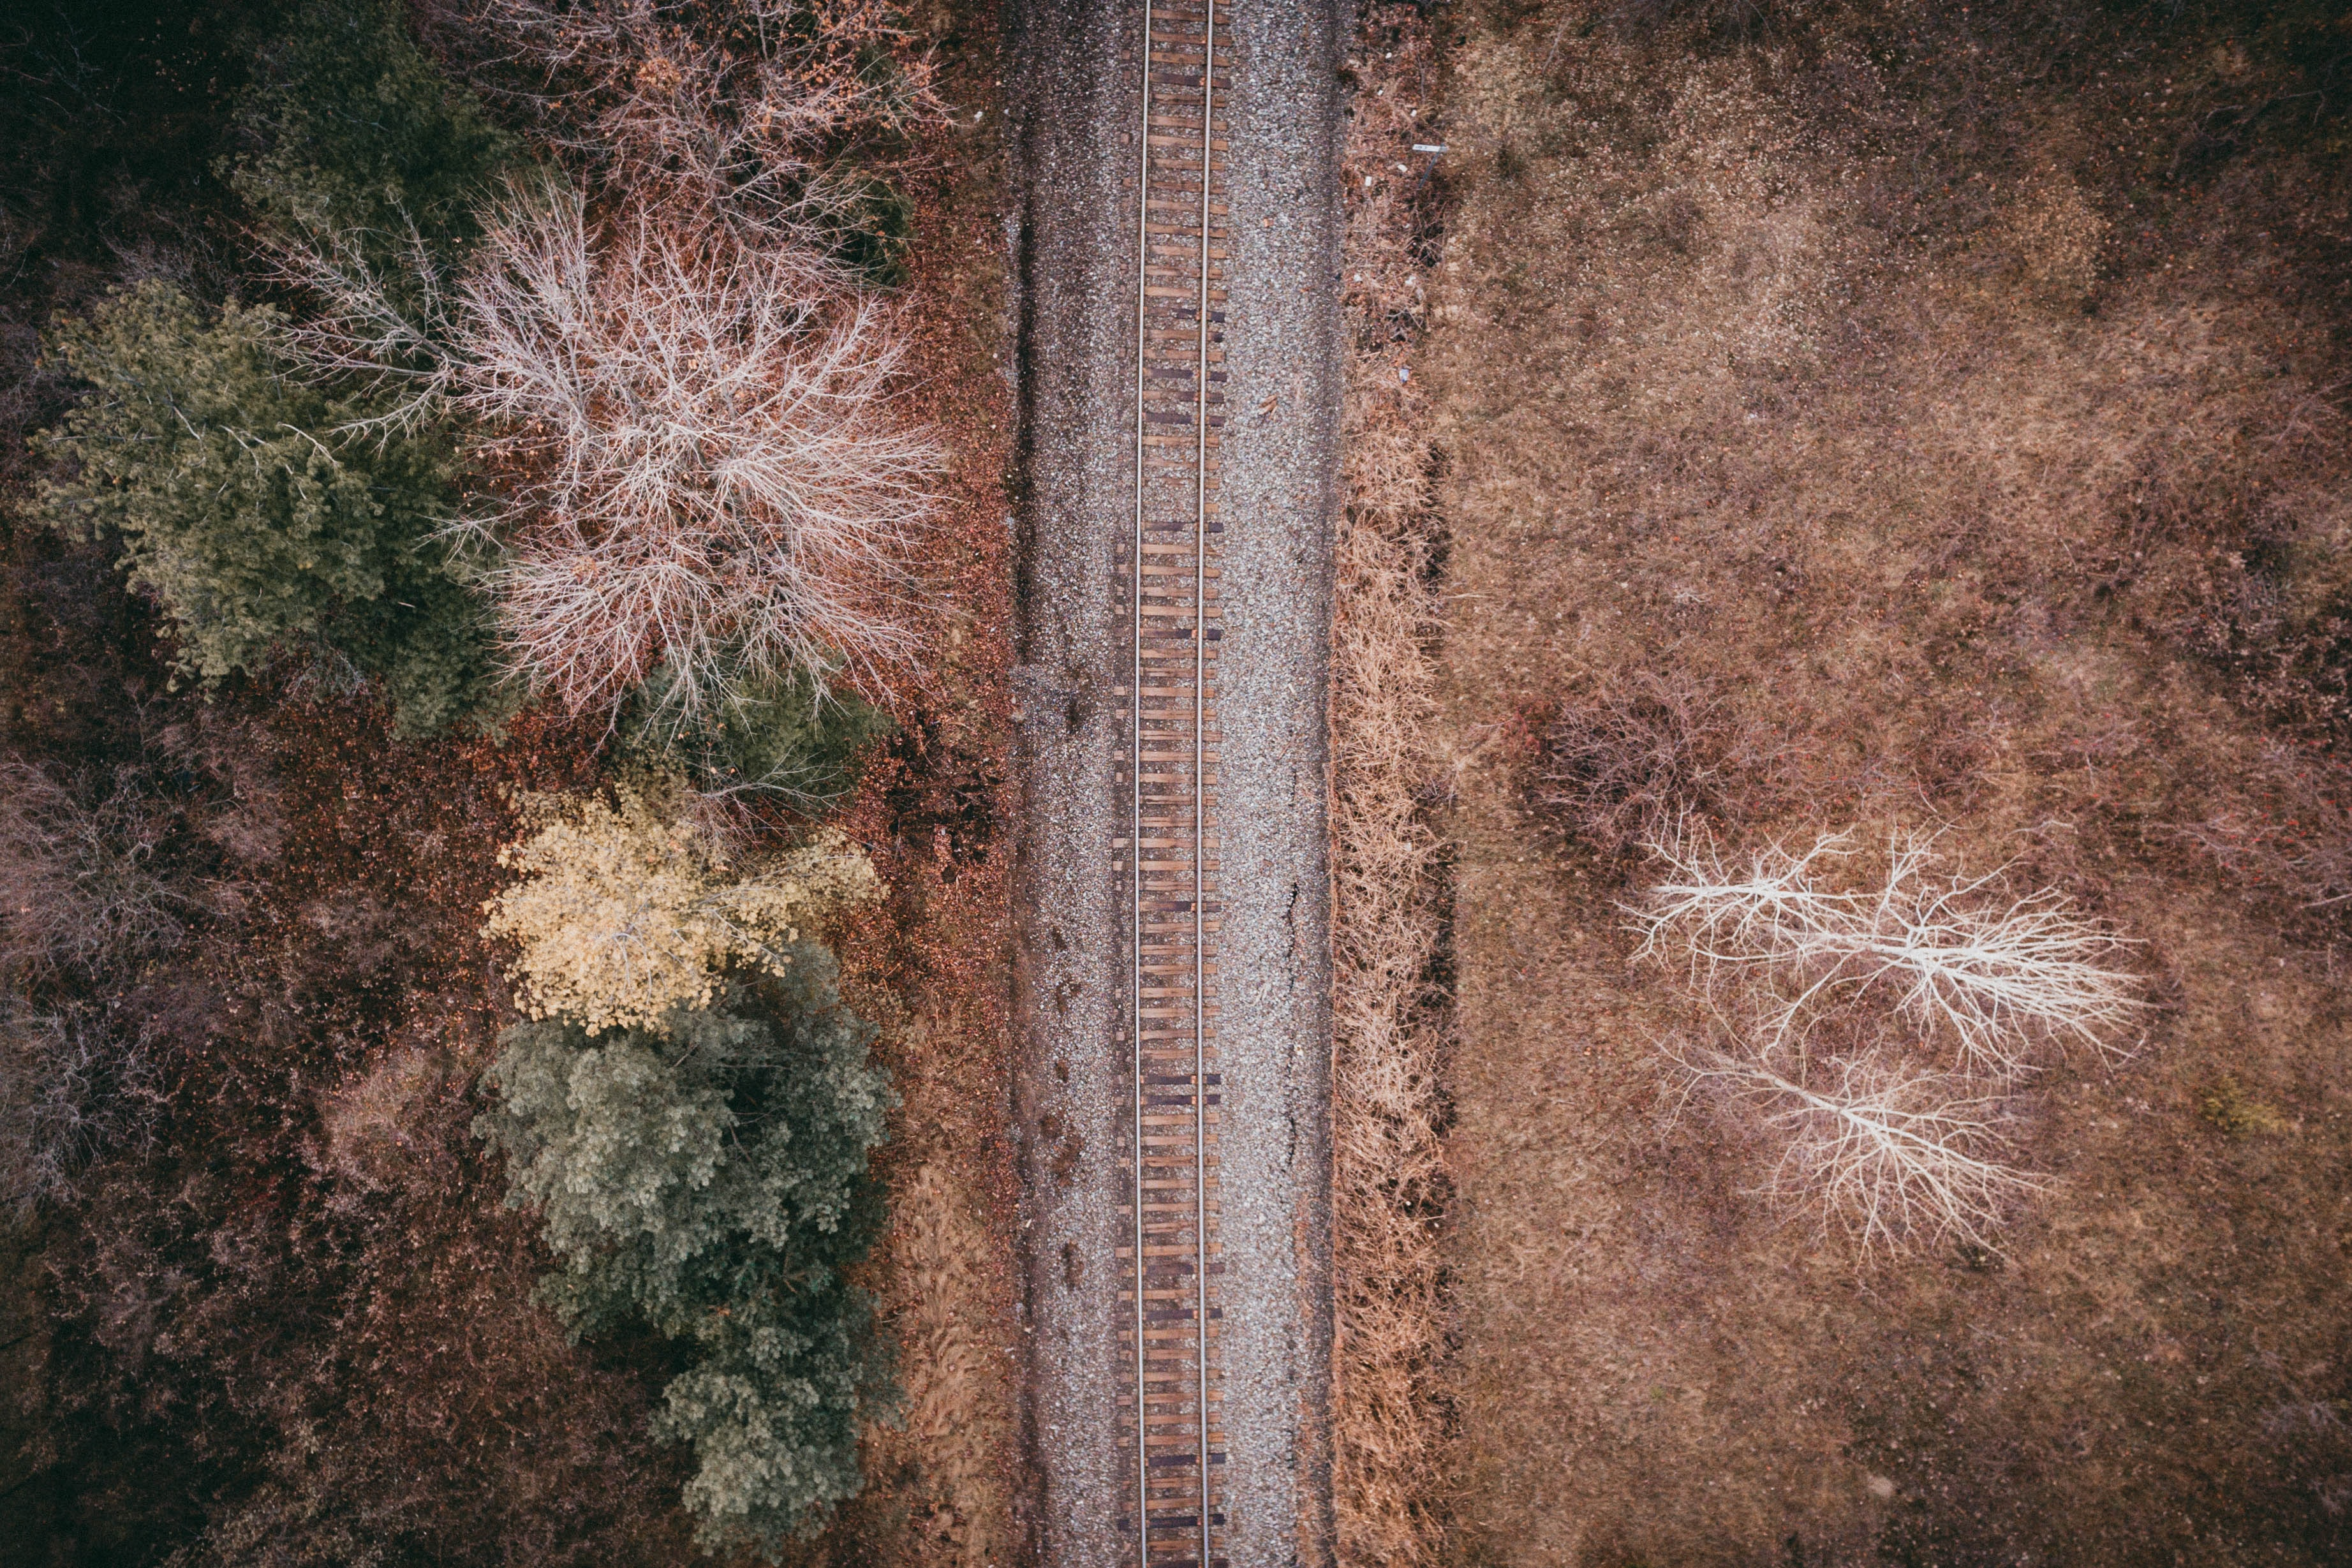 train railway beside land with trees